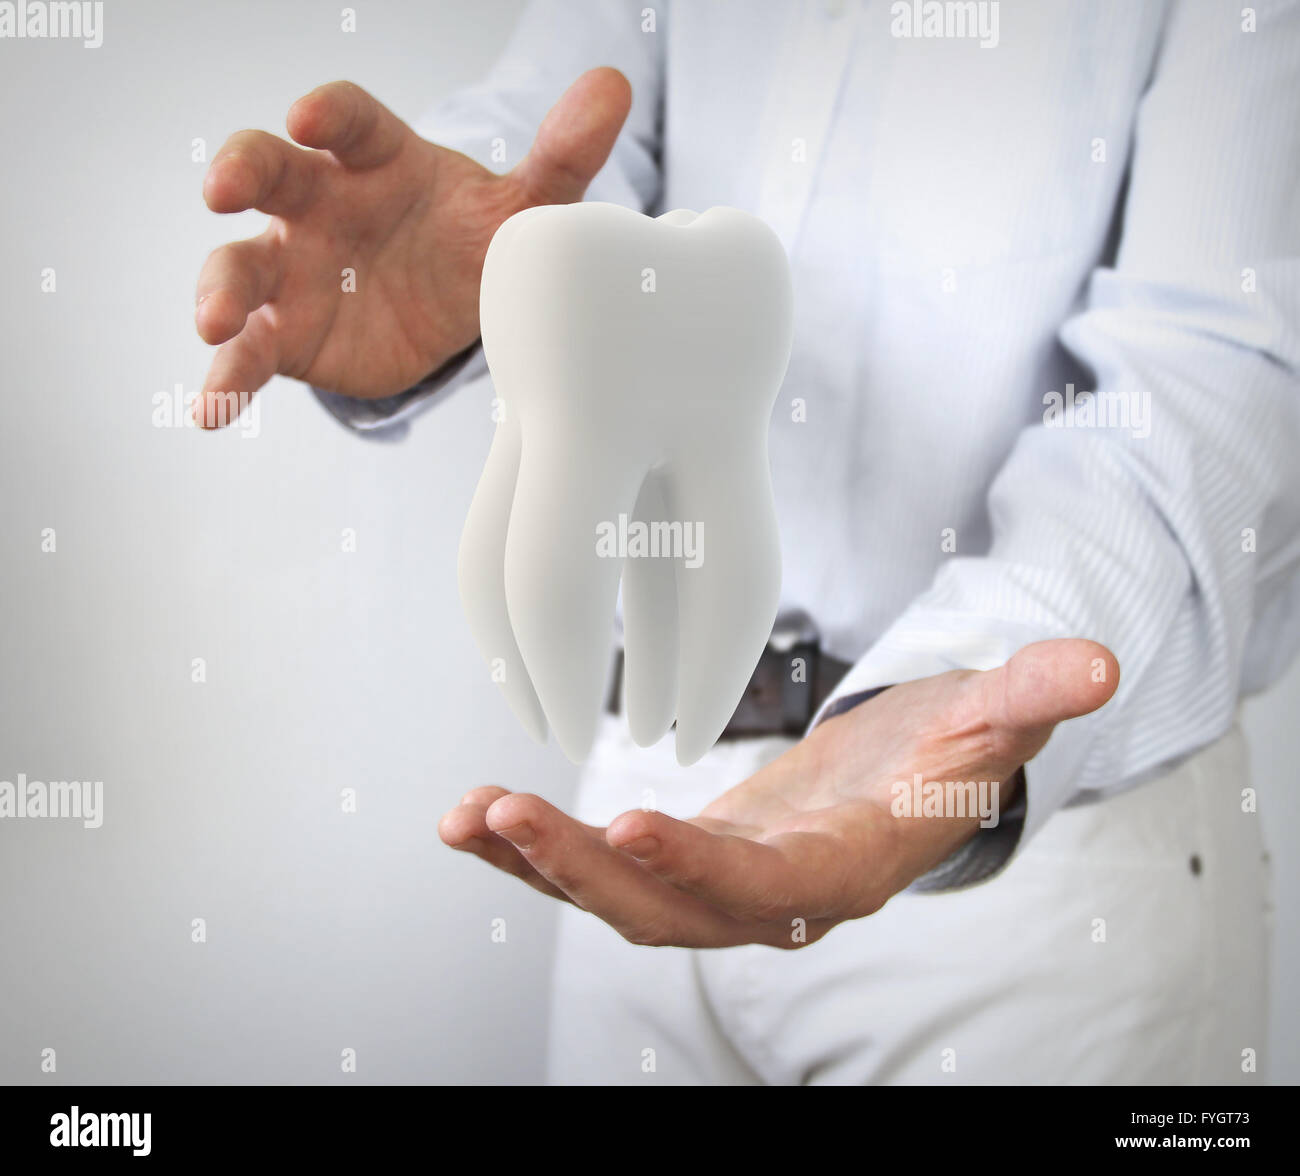 dental care concept: molar tooth in man hands - Stock Image